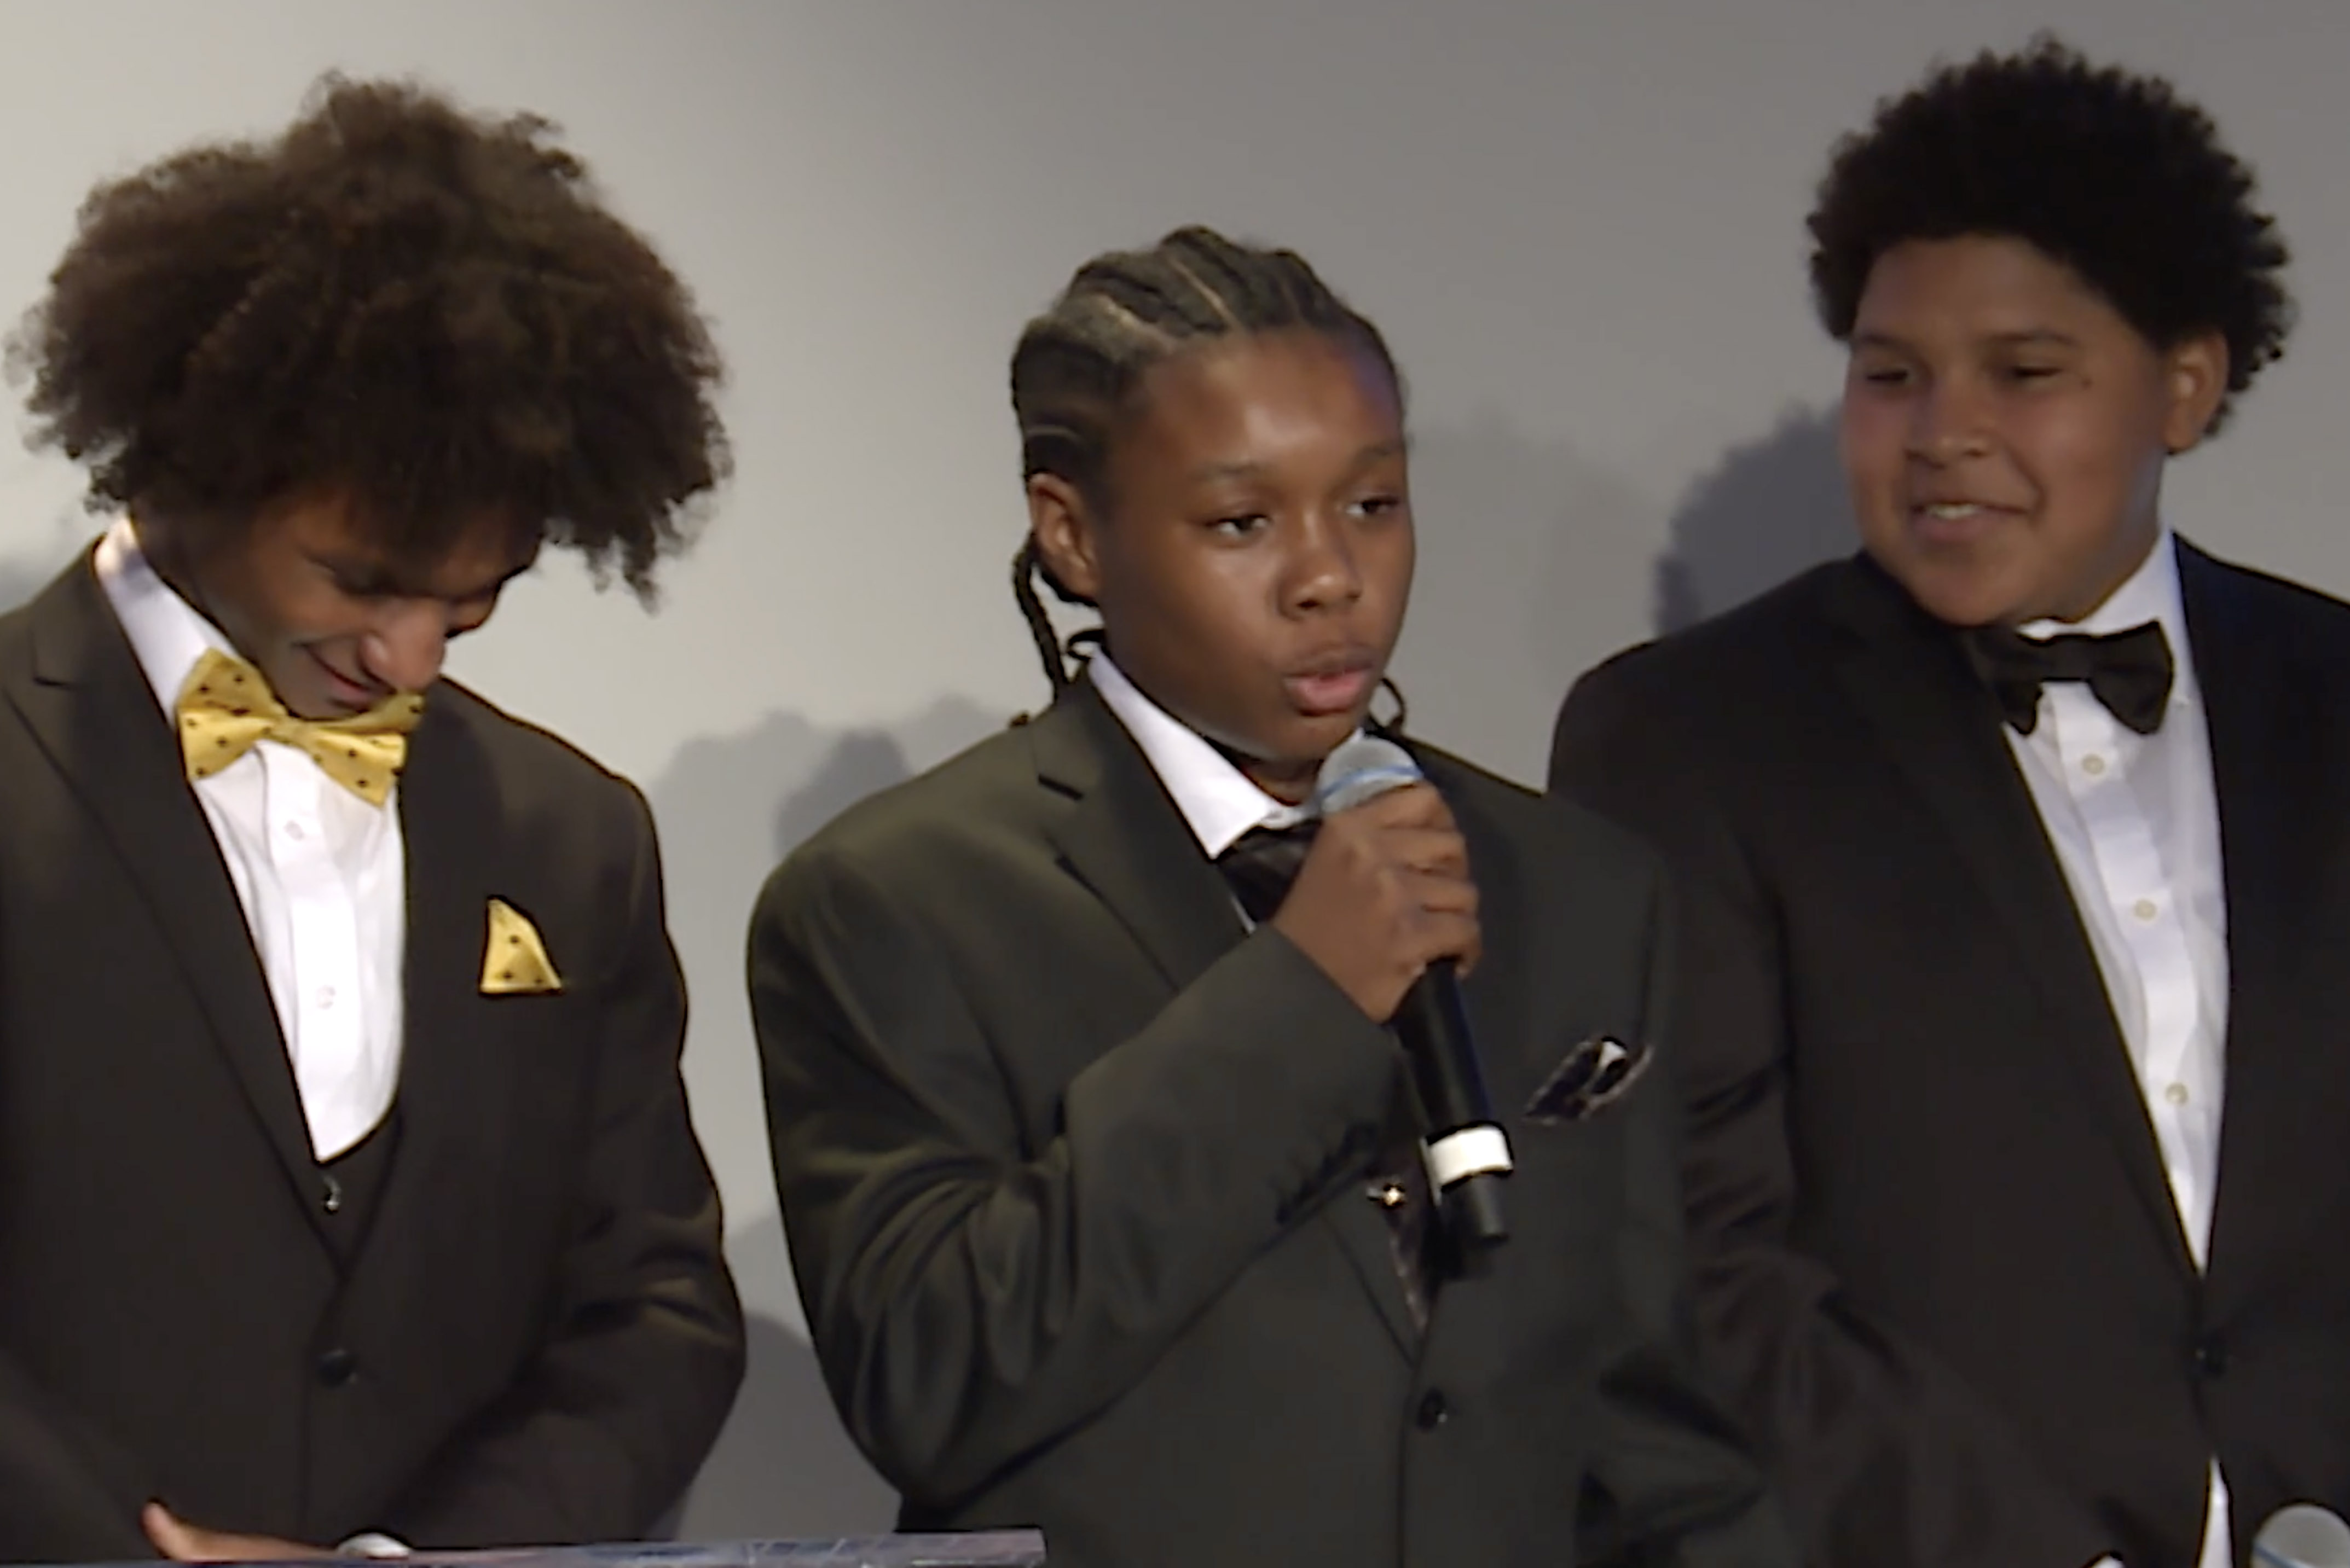 Three kids dressed in tuxes at a formal VE-JV event. The kid in the center is speaking on the mic.